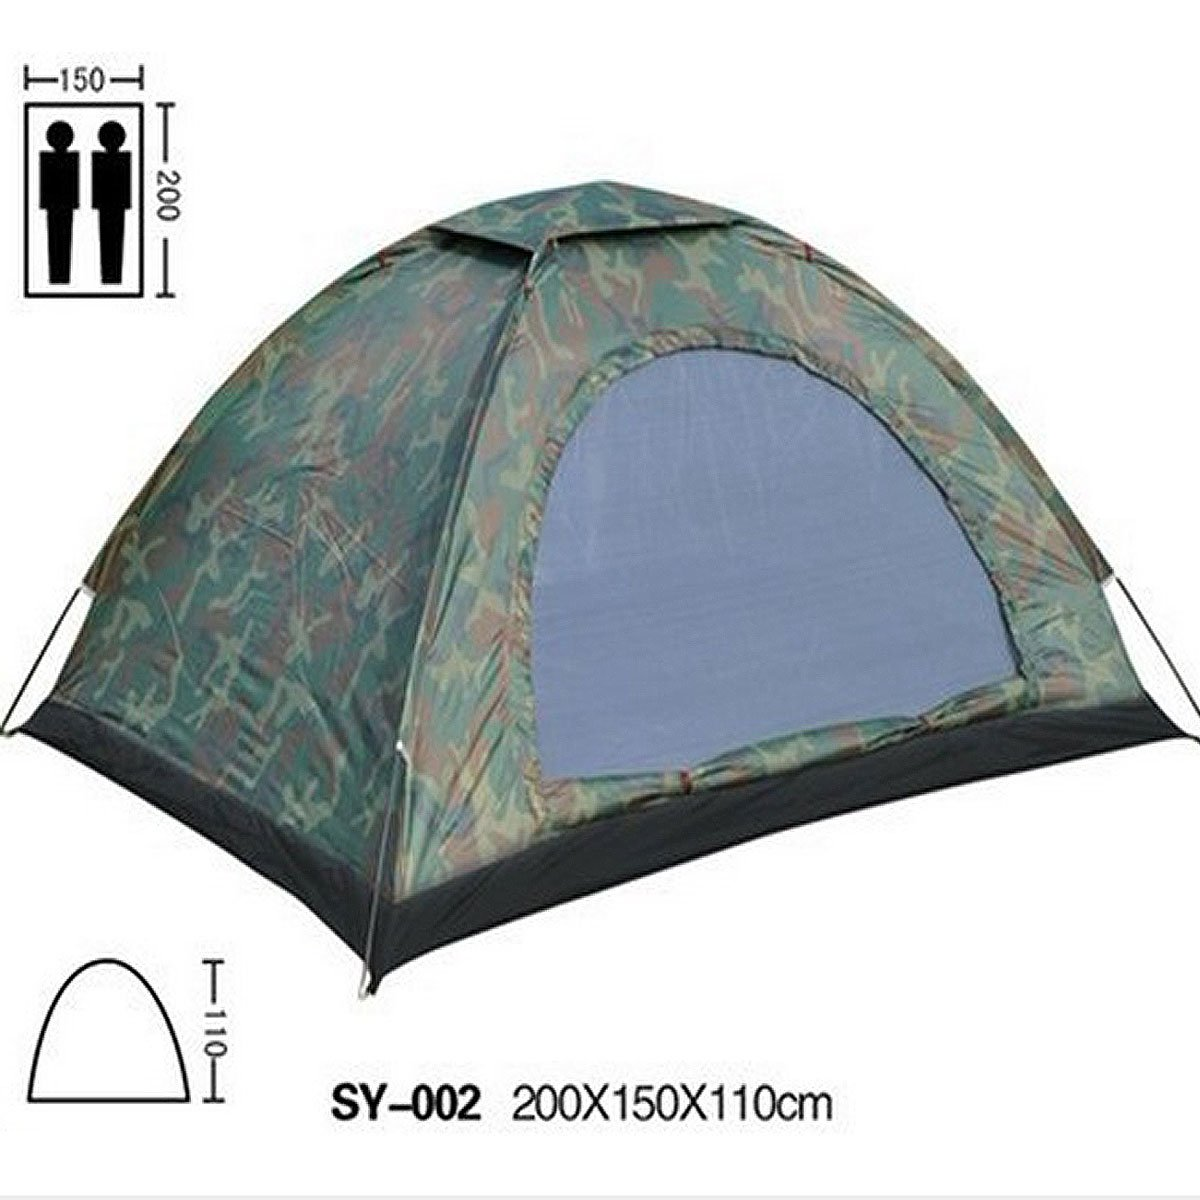 Amazon.com  C&ing tent 2 person 3 season camouflage dome tent easy setup outdoor tent for c&ing hiking with carry bag  Sports u0026 Outdoors  sc 1 st  Amazon.com & Amazon.com : Camping tent 2 person 3 season camouflage dome tent ...